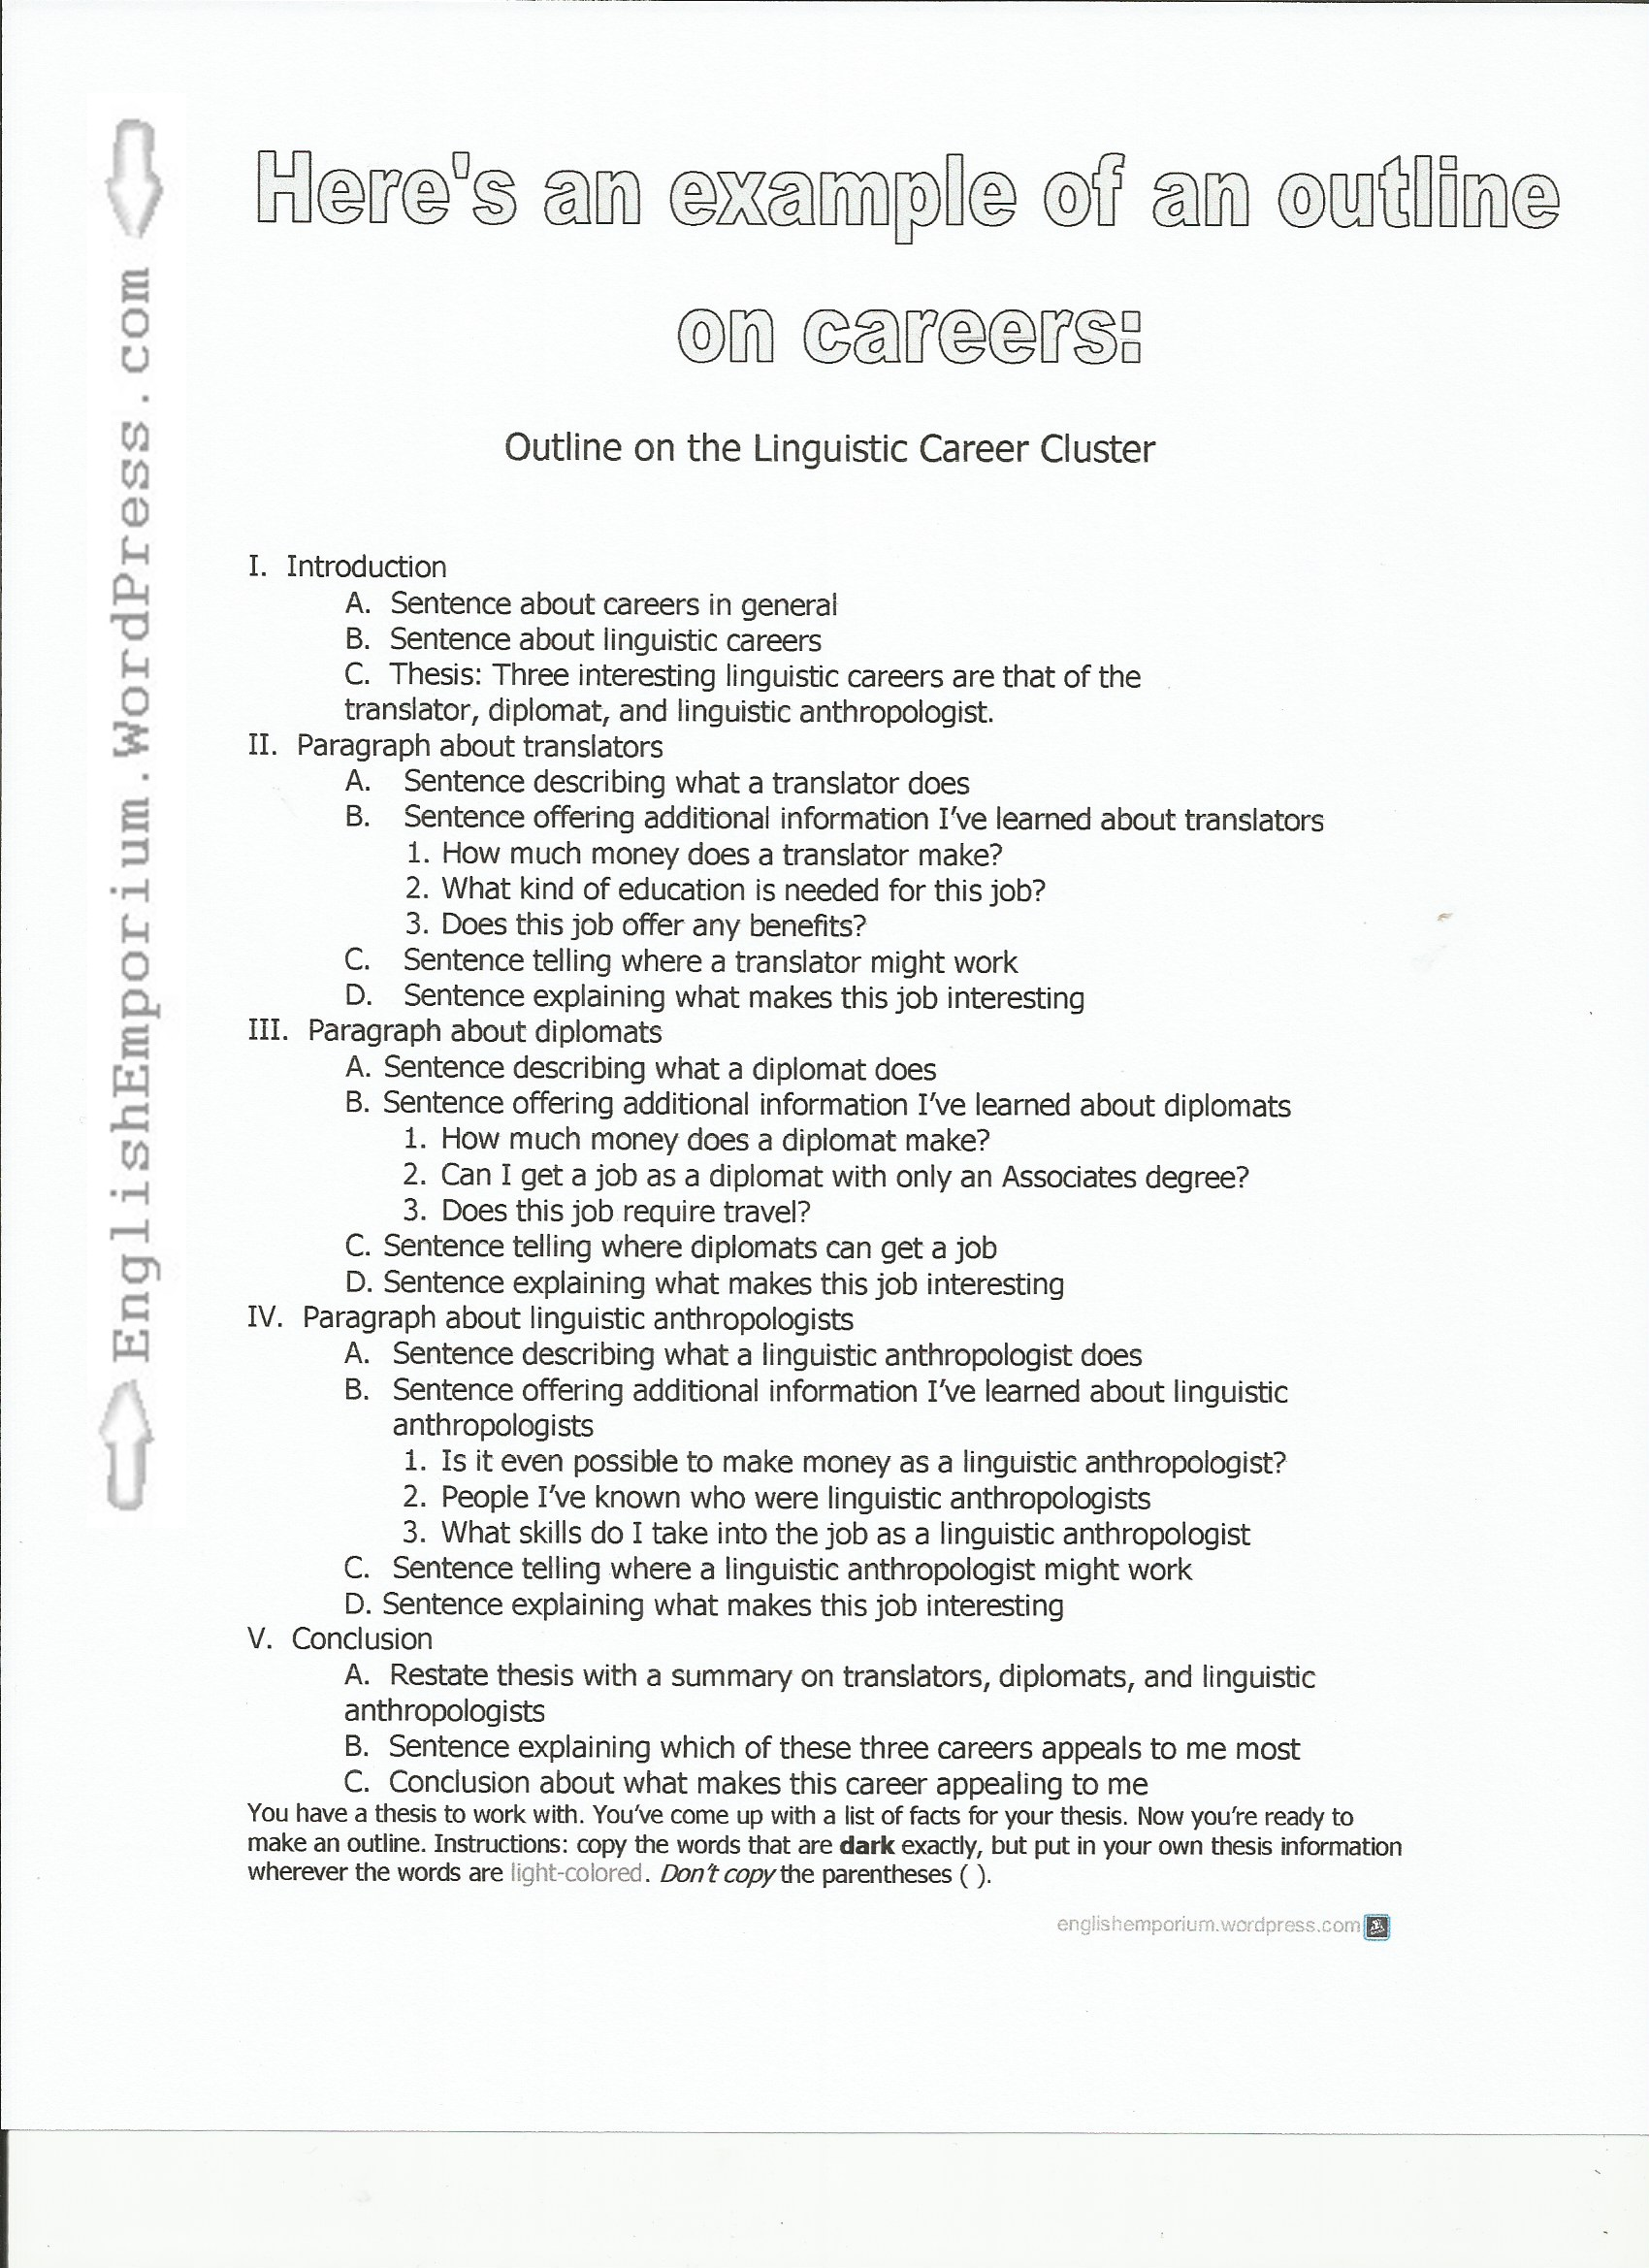 005 Outline On Careers Pg Career Research Paper Unusual Template Full